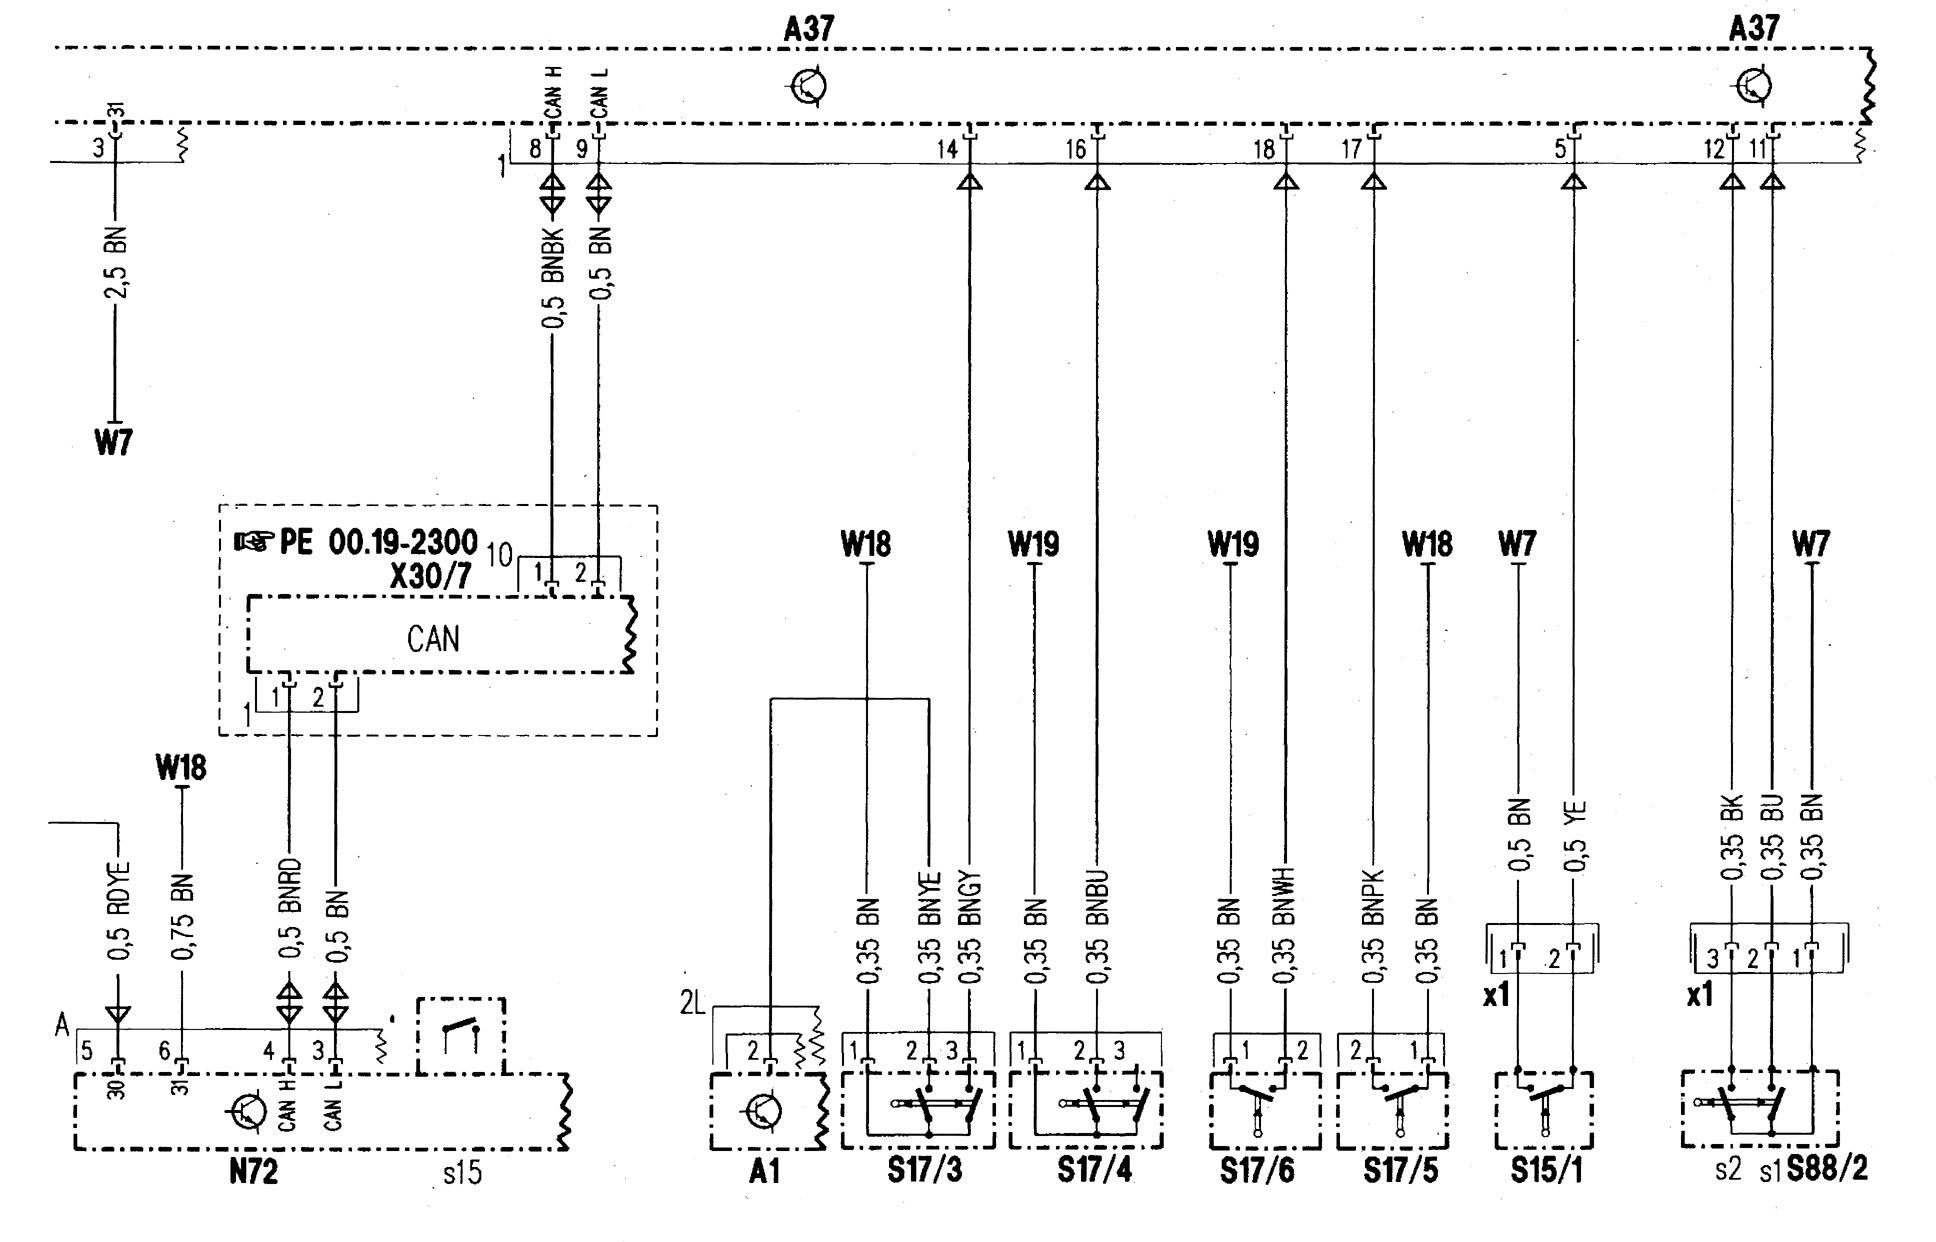 Mercedes-benz C280  1998  - Wiring Diagrams